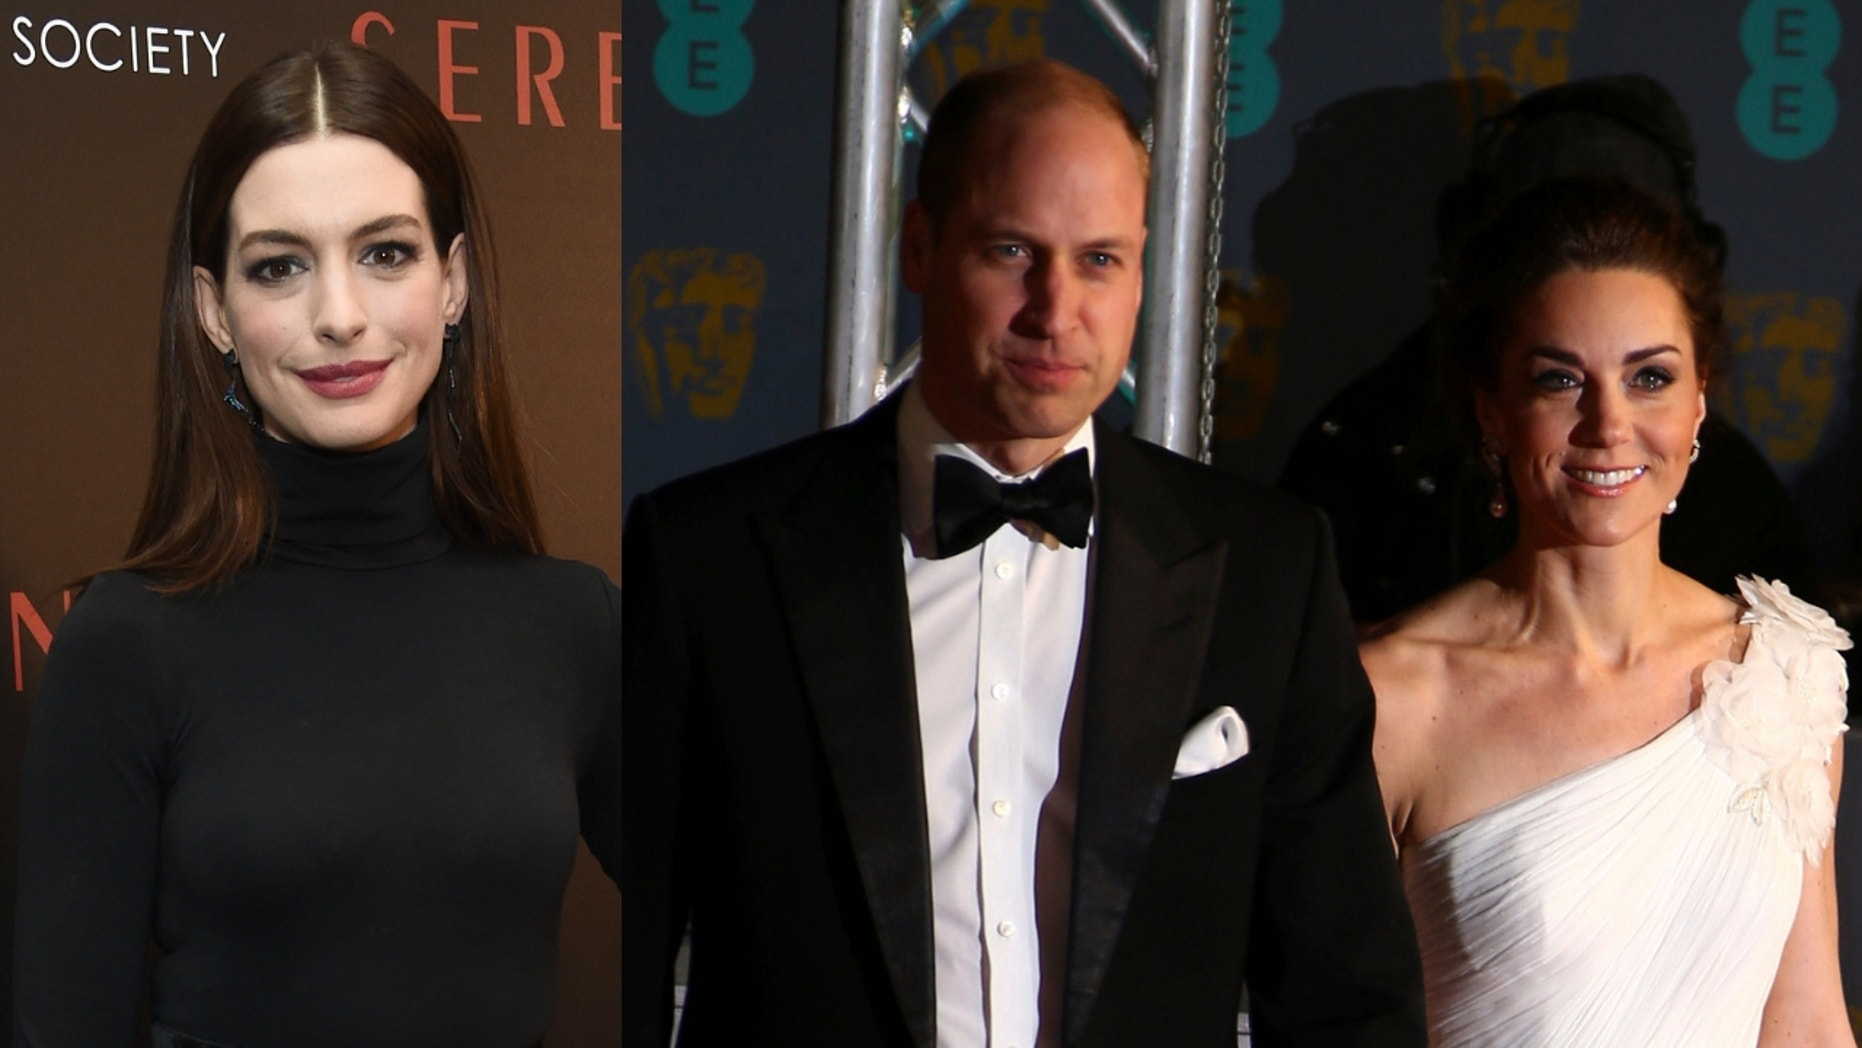 Anne Hathaway pronounced she schooled one parenting tip from Prince William and Kate Middleton.